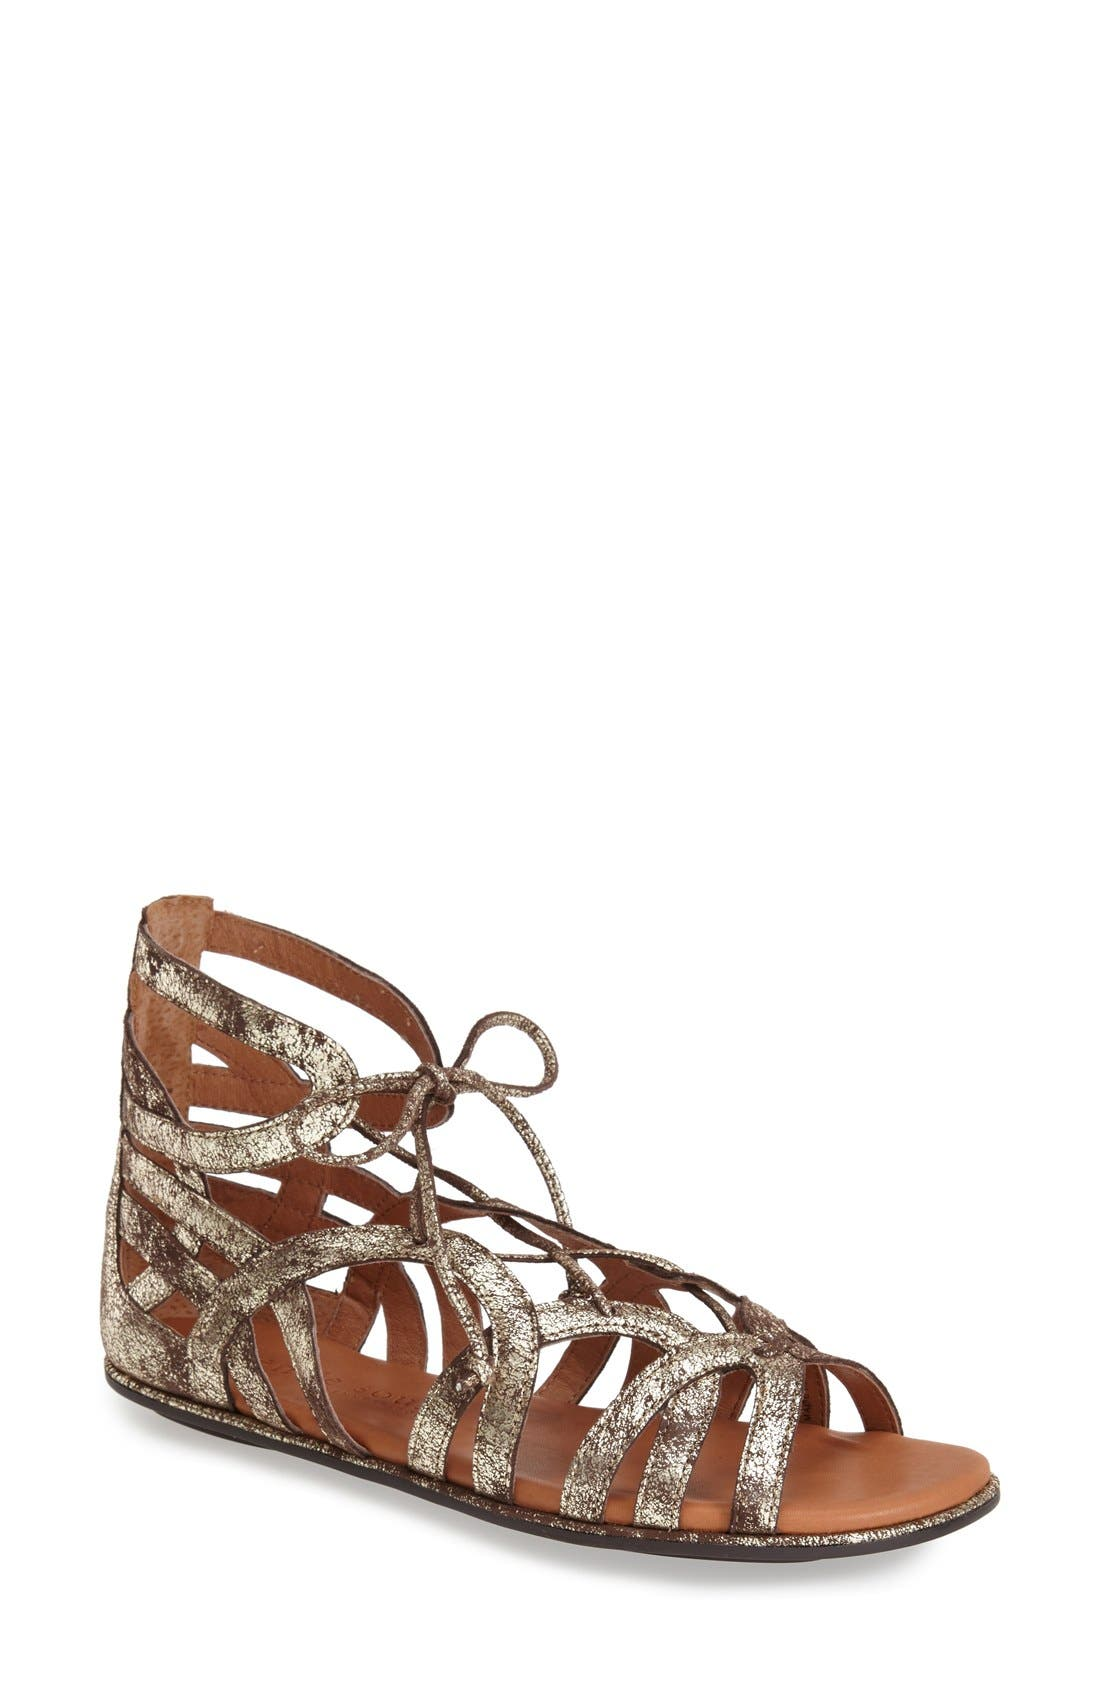 GENTLE SOULS BY KENNETH COLE 'Break My Heart 3' Cage Sandal, Main, color, BROWN LEATHER